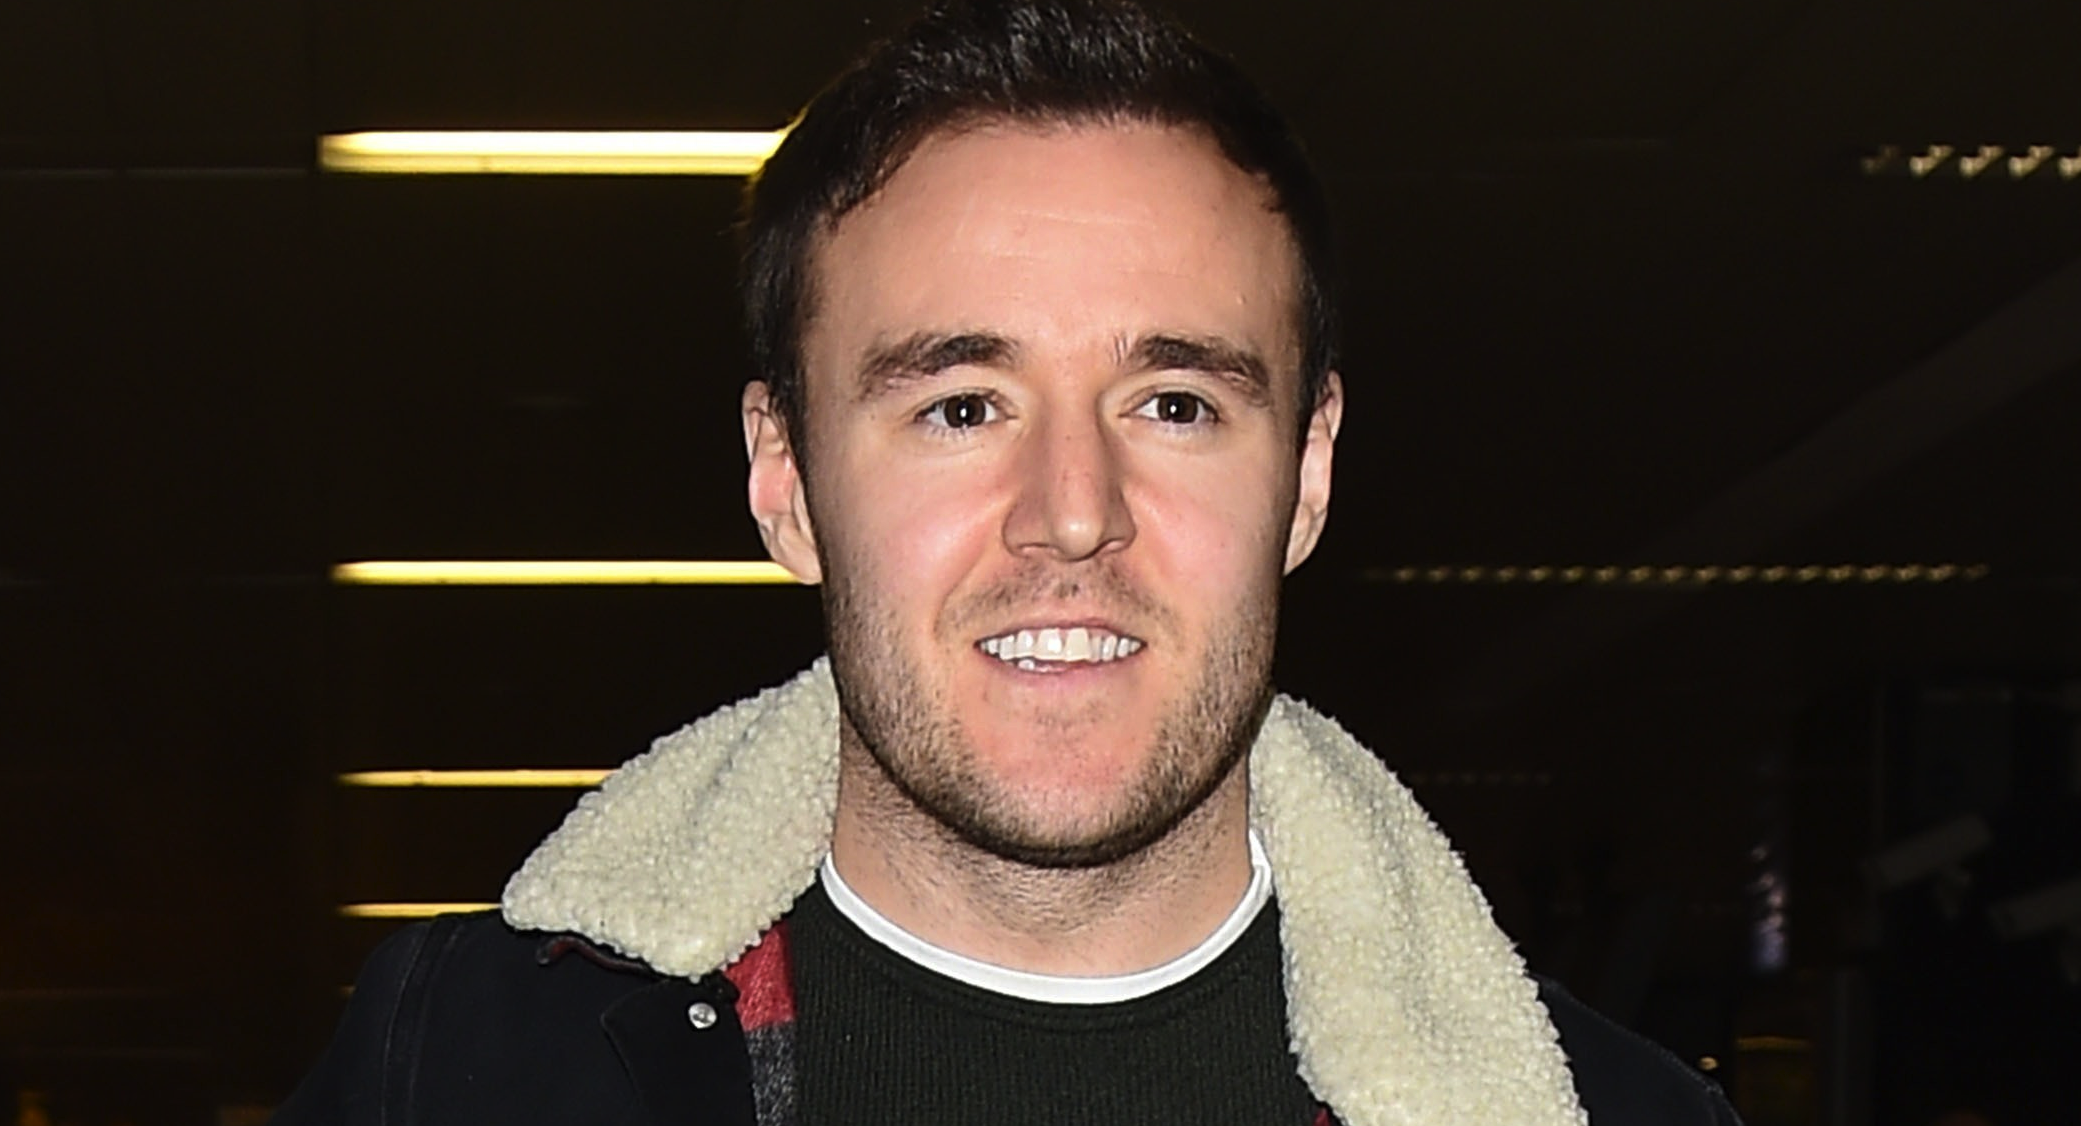 Coronation Street's Alan Halsall shares gorgeous photo as he 'makes memories' with daughter Sienna